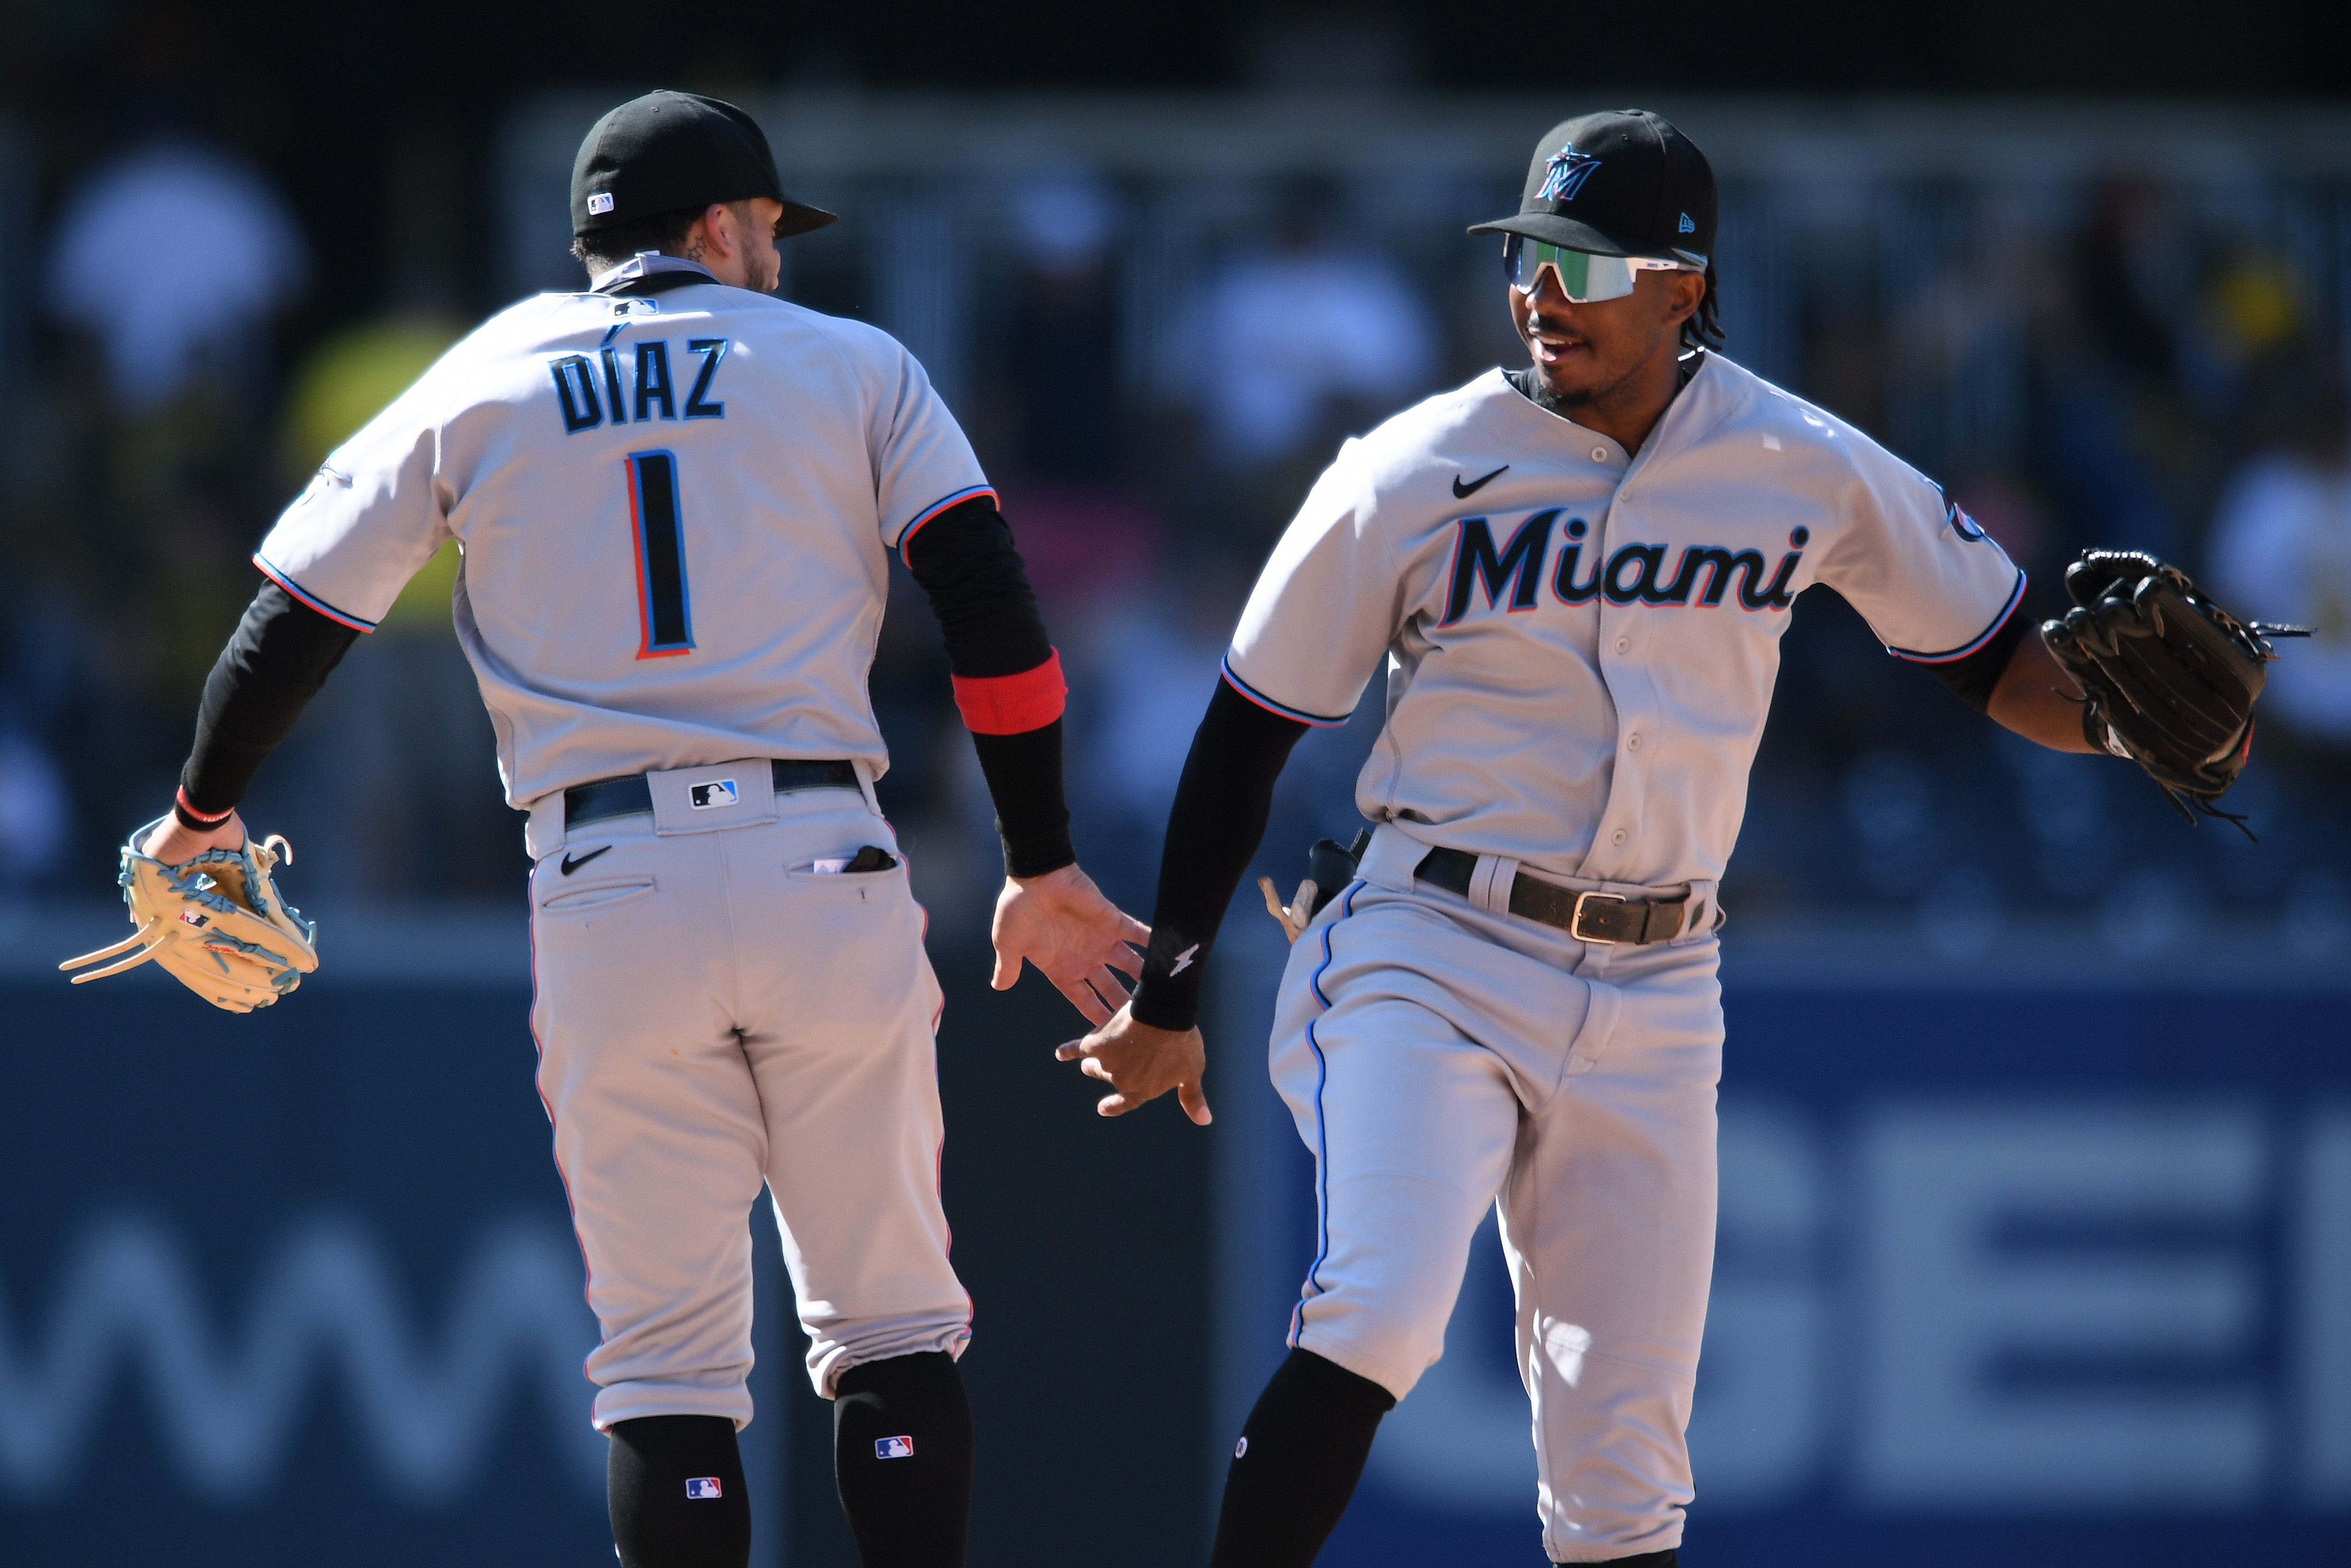 Miami Marlins center fielder Lewis Brinson (right) and second baseman Isan Diaz (1) celebrate on the field after defeating the San Diego Padres at Petco Park